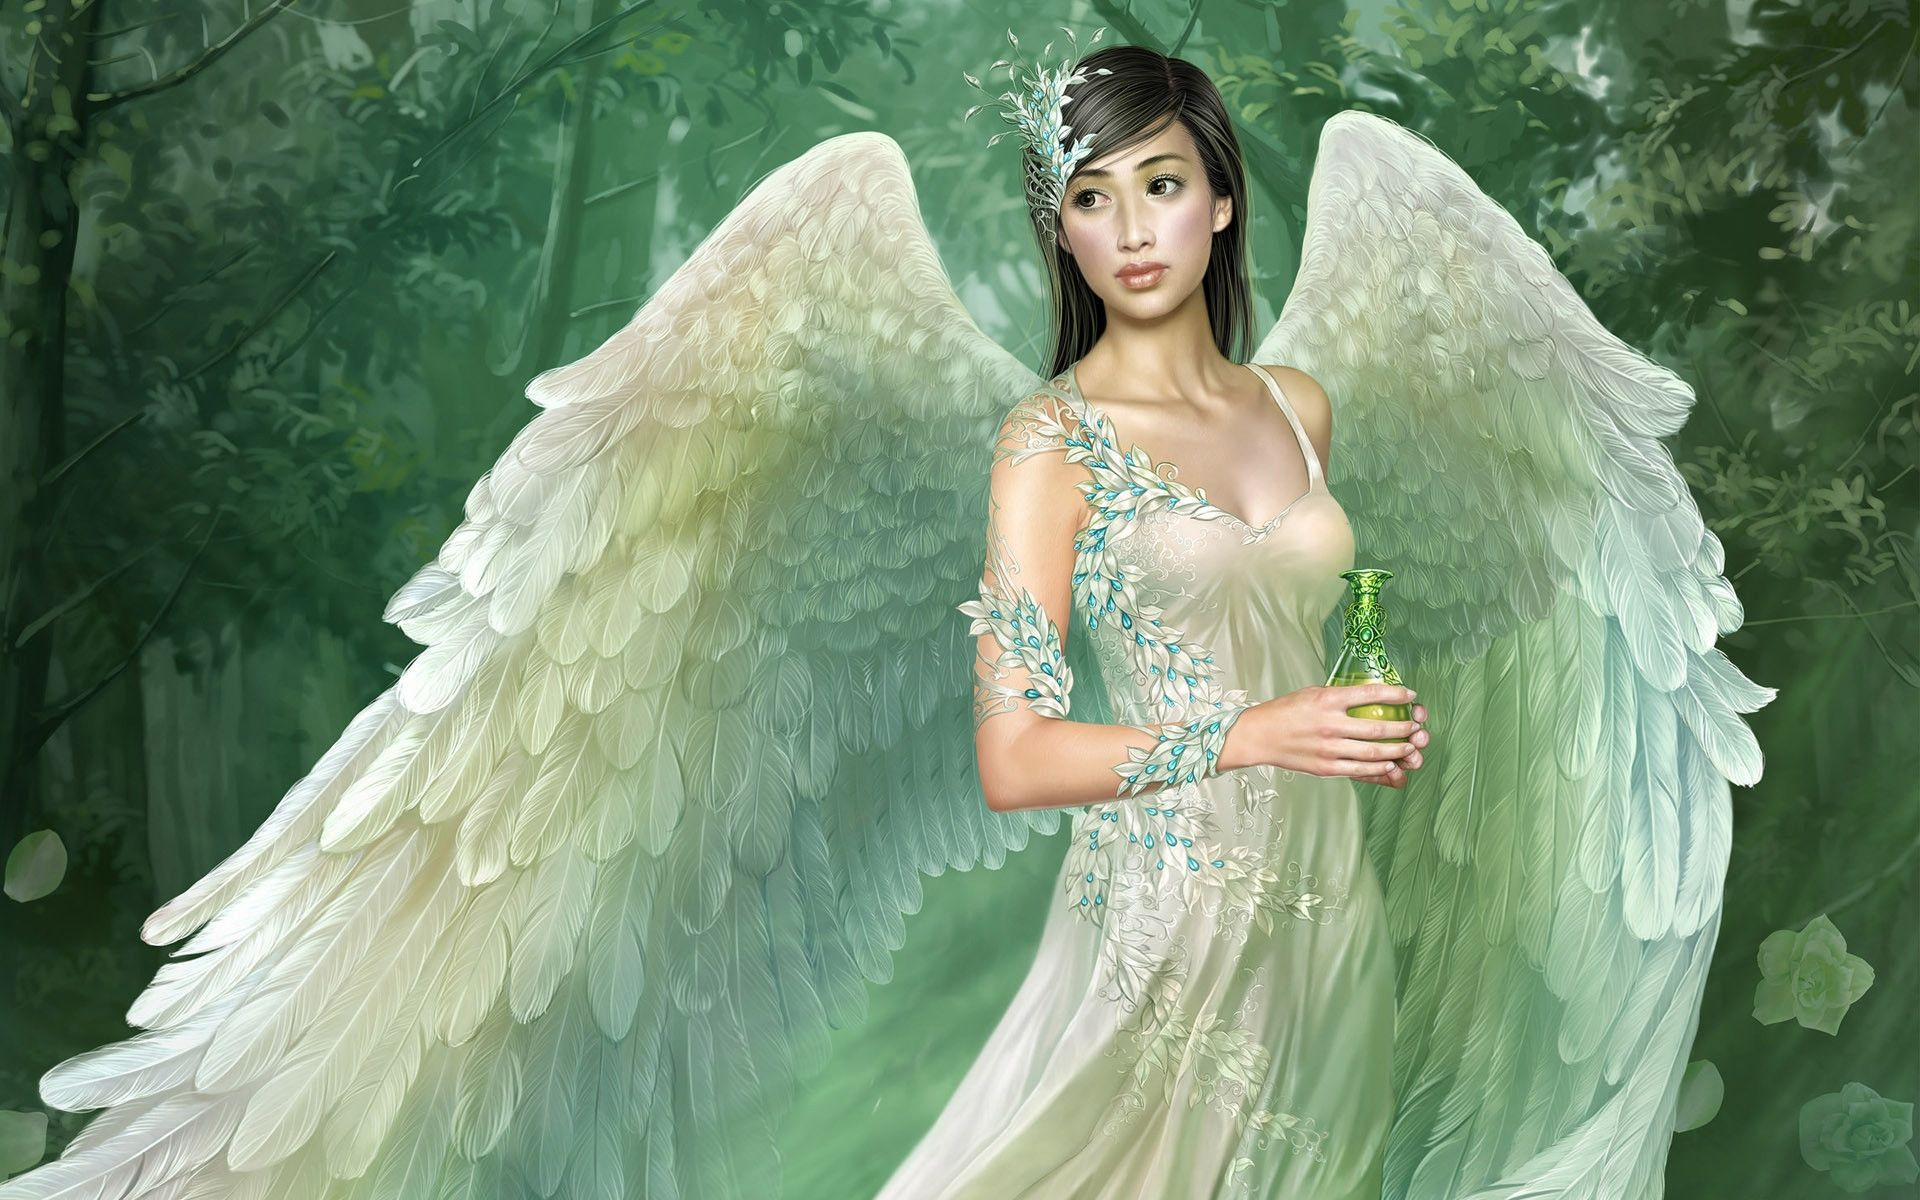 Beautiful fairy wallpapers sf wallpaper beautiful fairies wallpapers wallpaper cave voltagebd Image collections